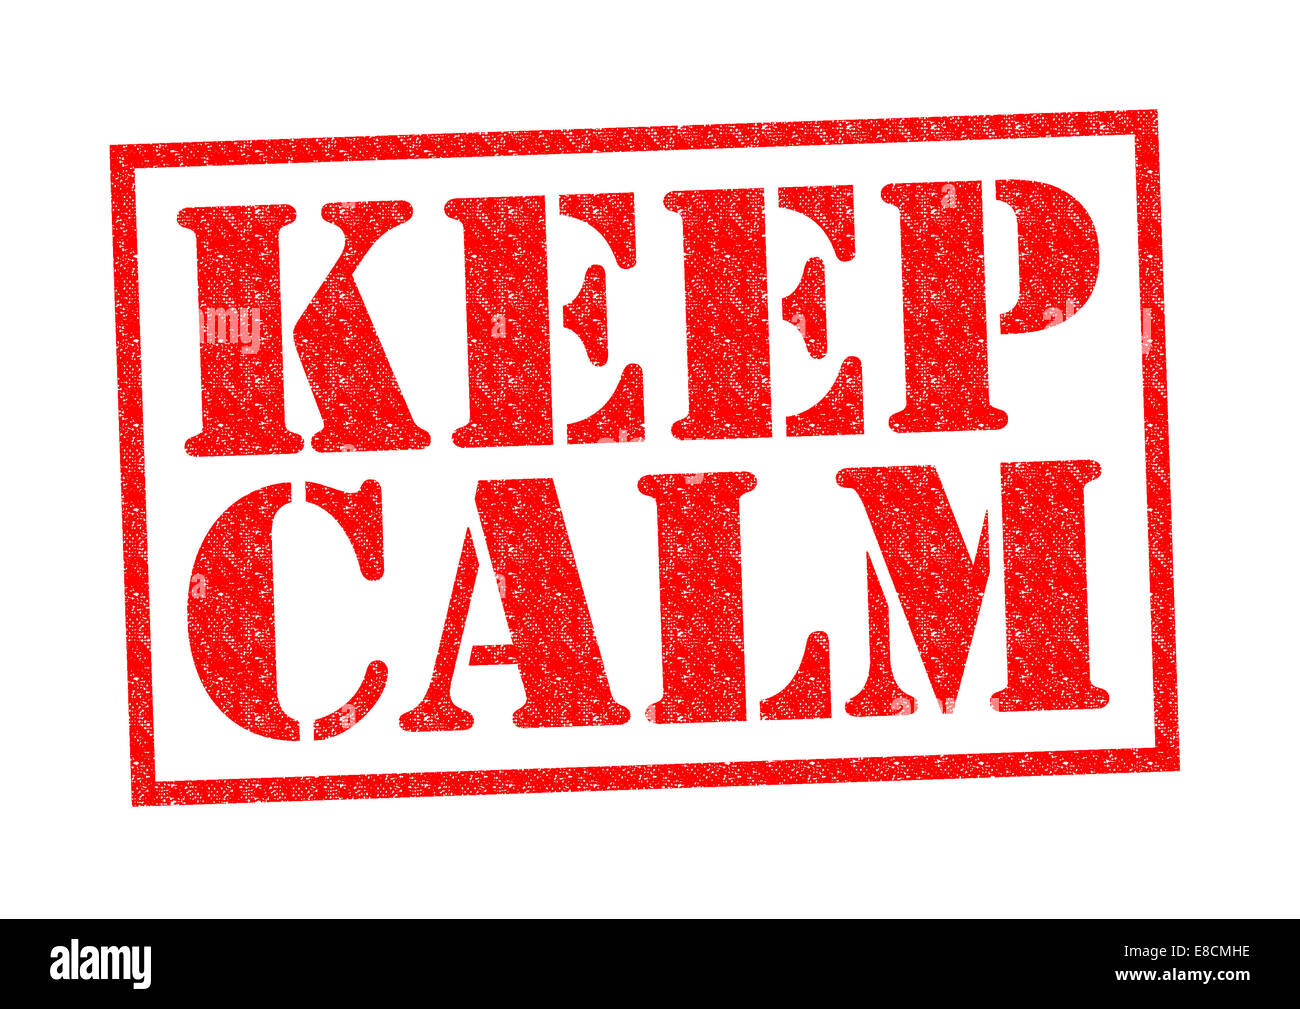 KEEP CALM red Rubber Stamp over a white background. - Stock Image